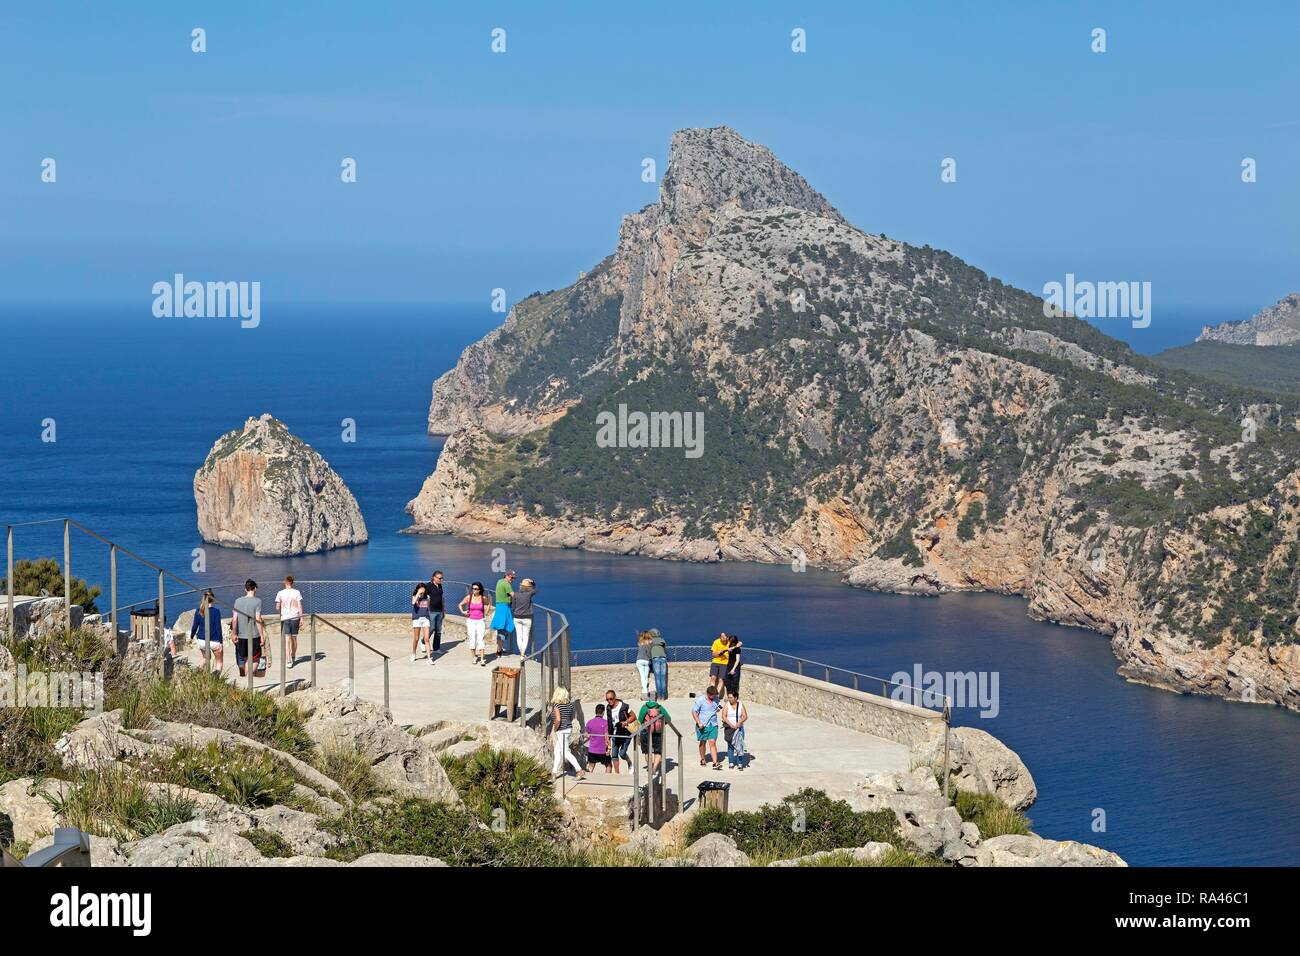 Tourists at the viewpoint, Mirador d' Es Colomer, also Mirador del Mal Pas, Peninsula Formentor, Majorca, Spain - Stock Image